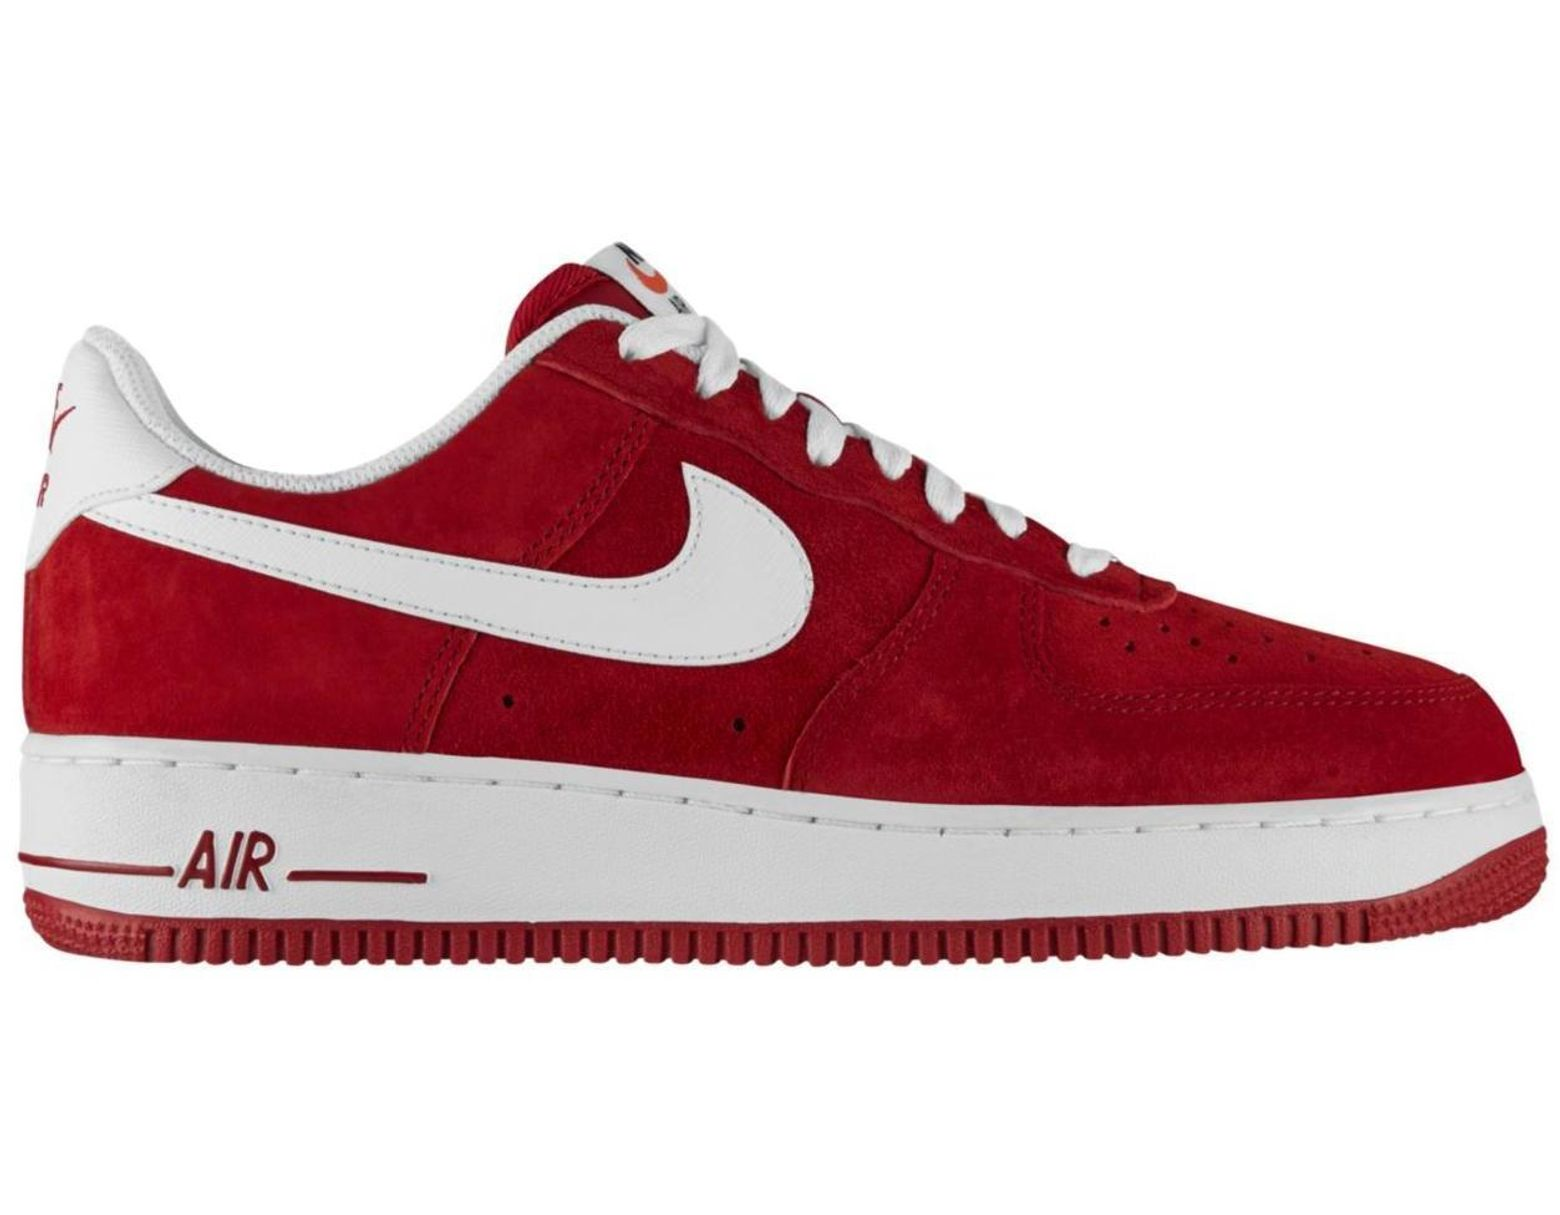 2018 shoes sale uk order online Men's Air Force 1 Low Gym Red White